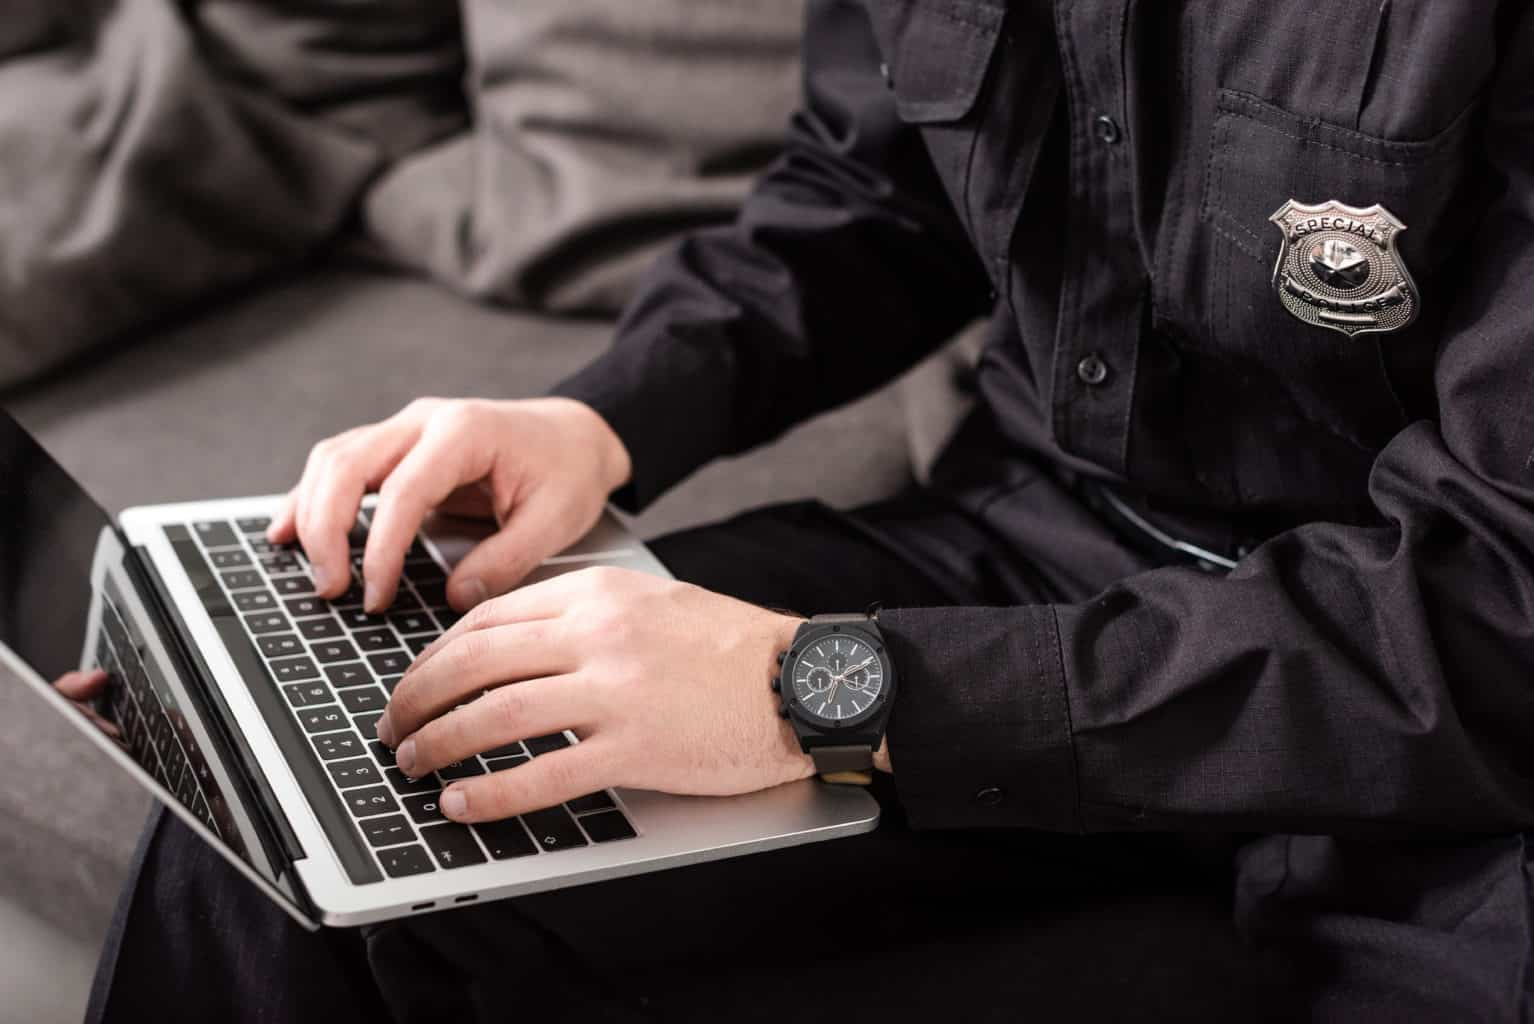 cropped view of policeman typing on laptop keyboard